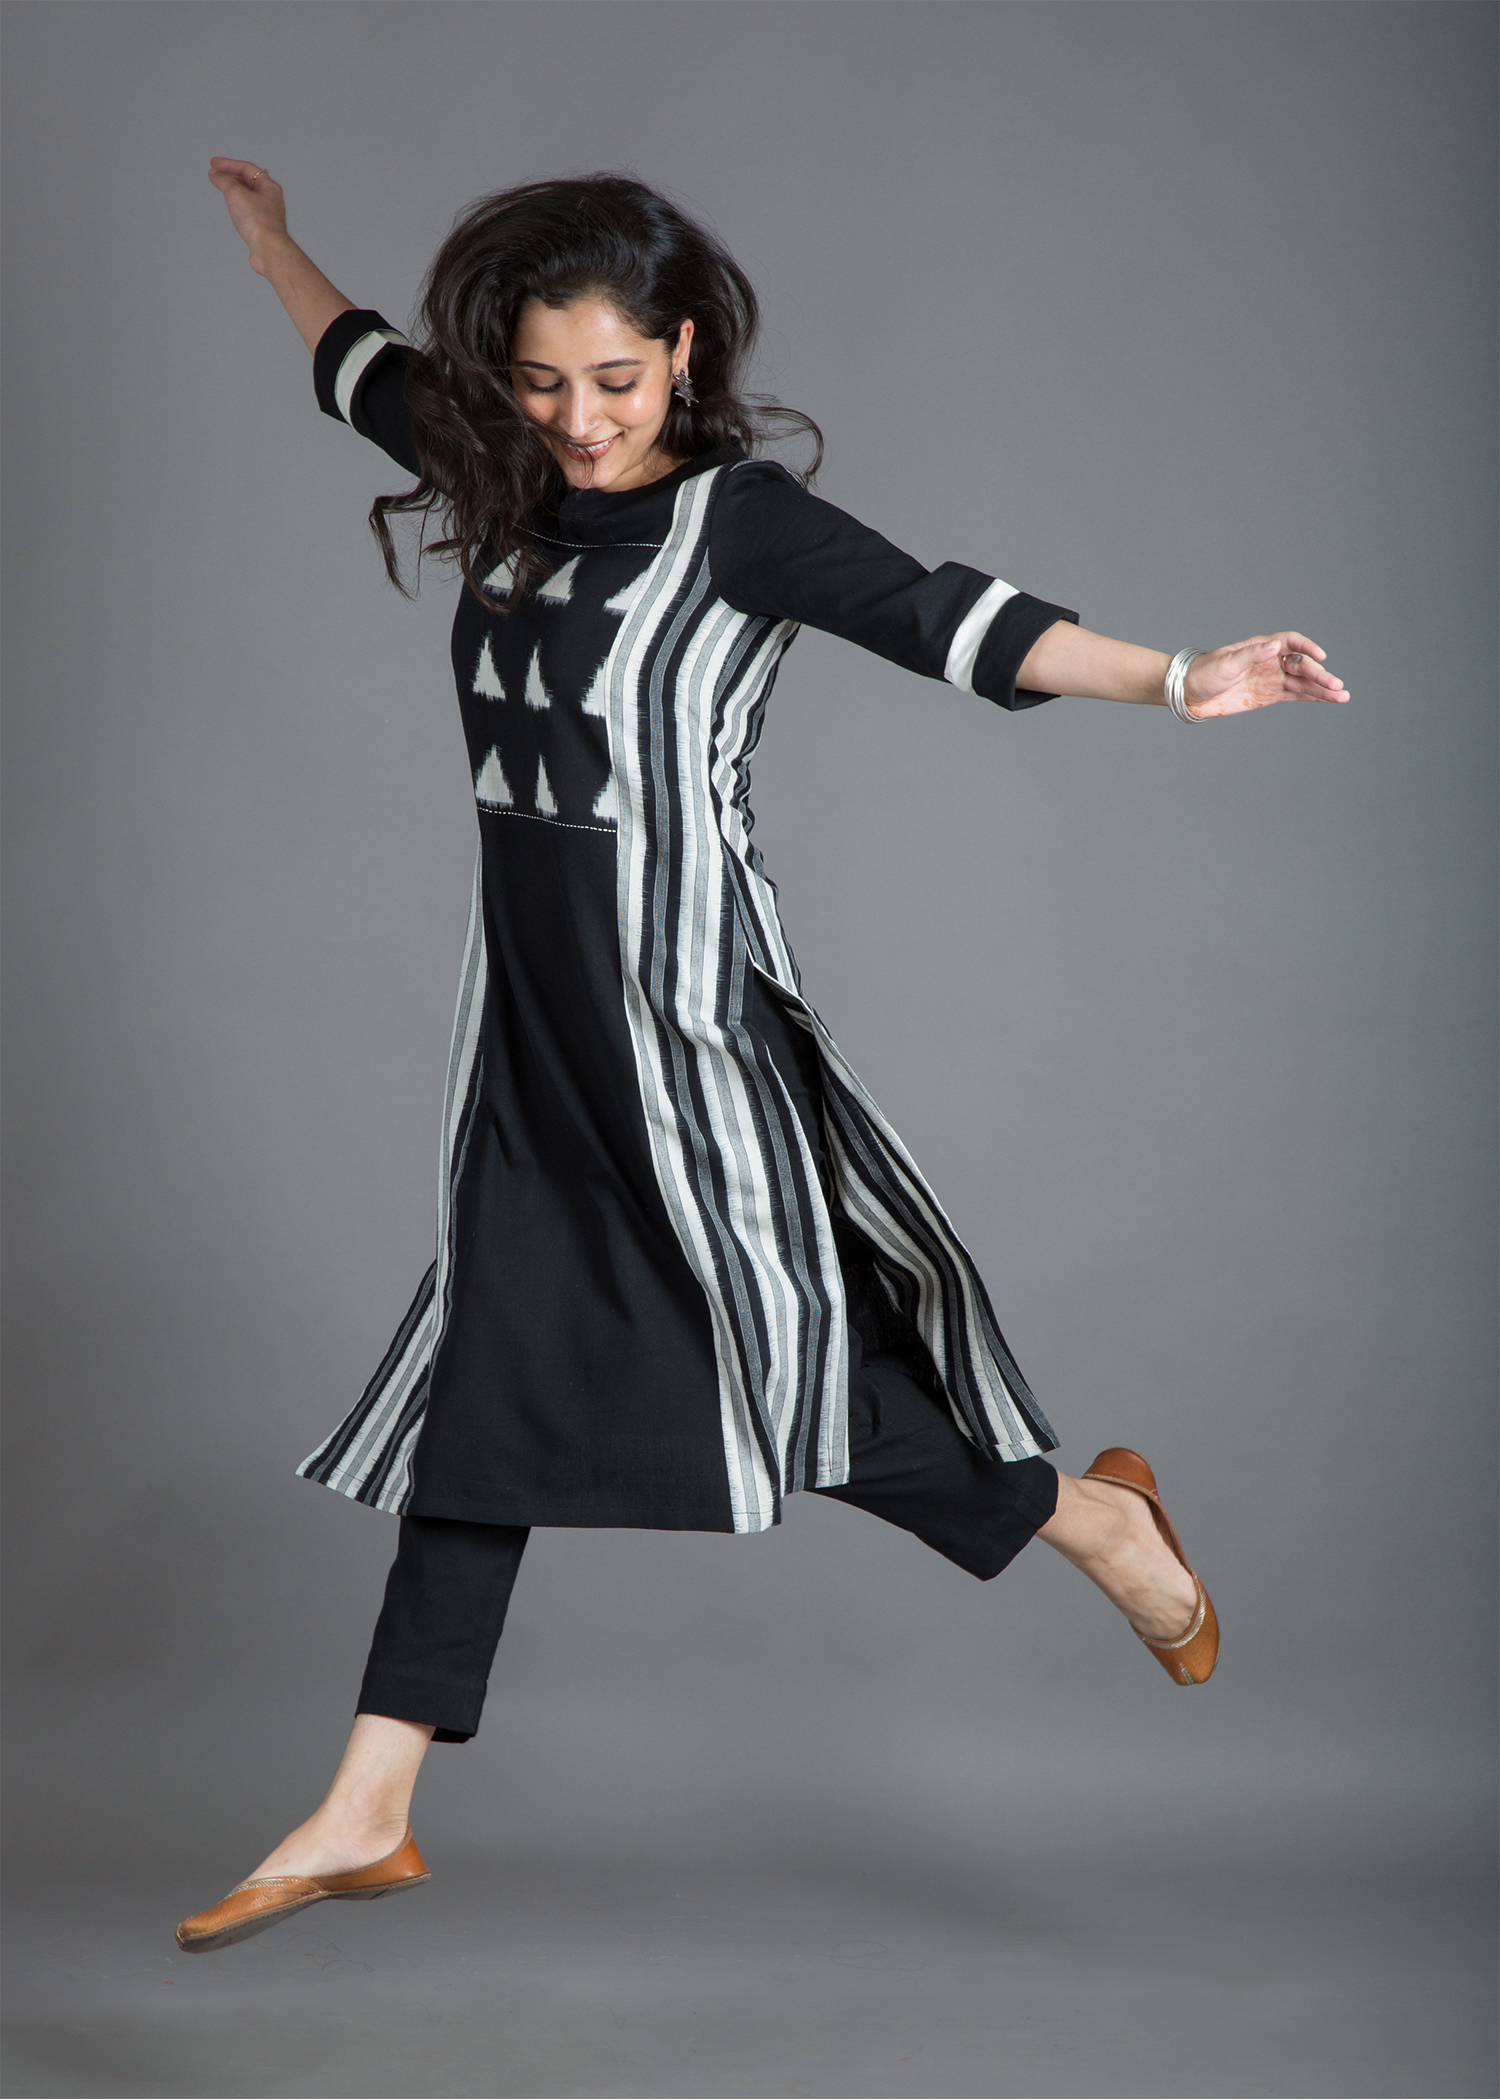 catalog/Winter 2018/BW kurta jump.jpg